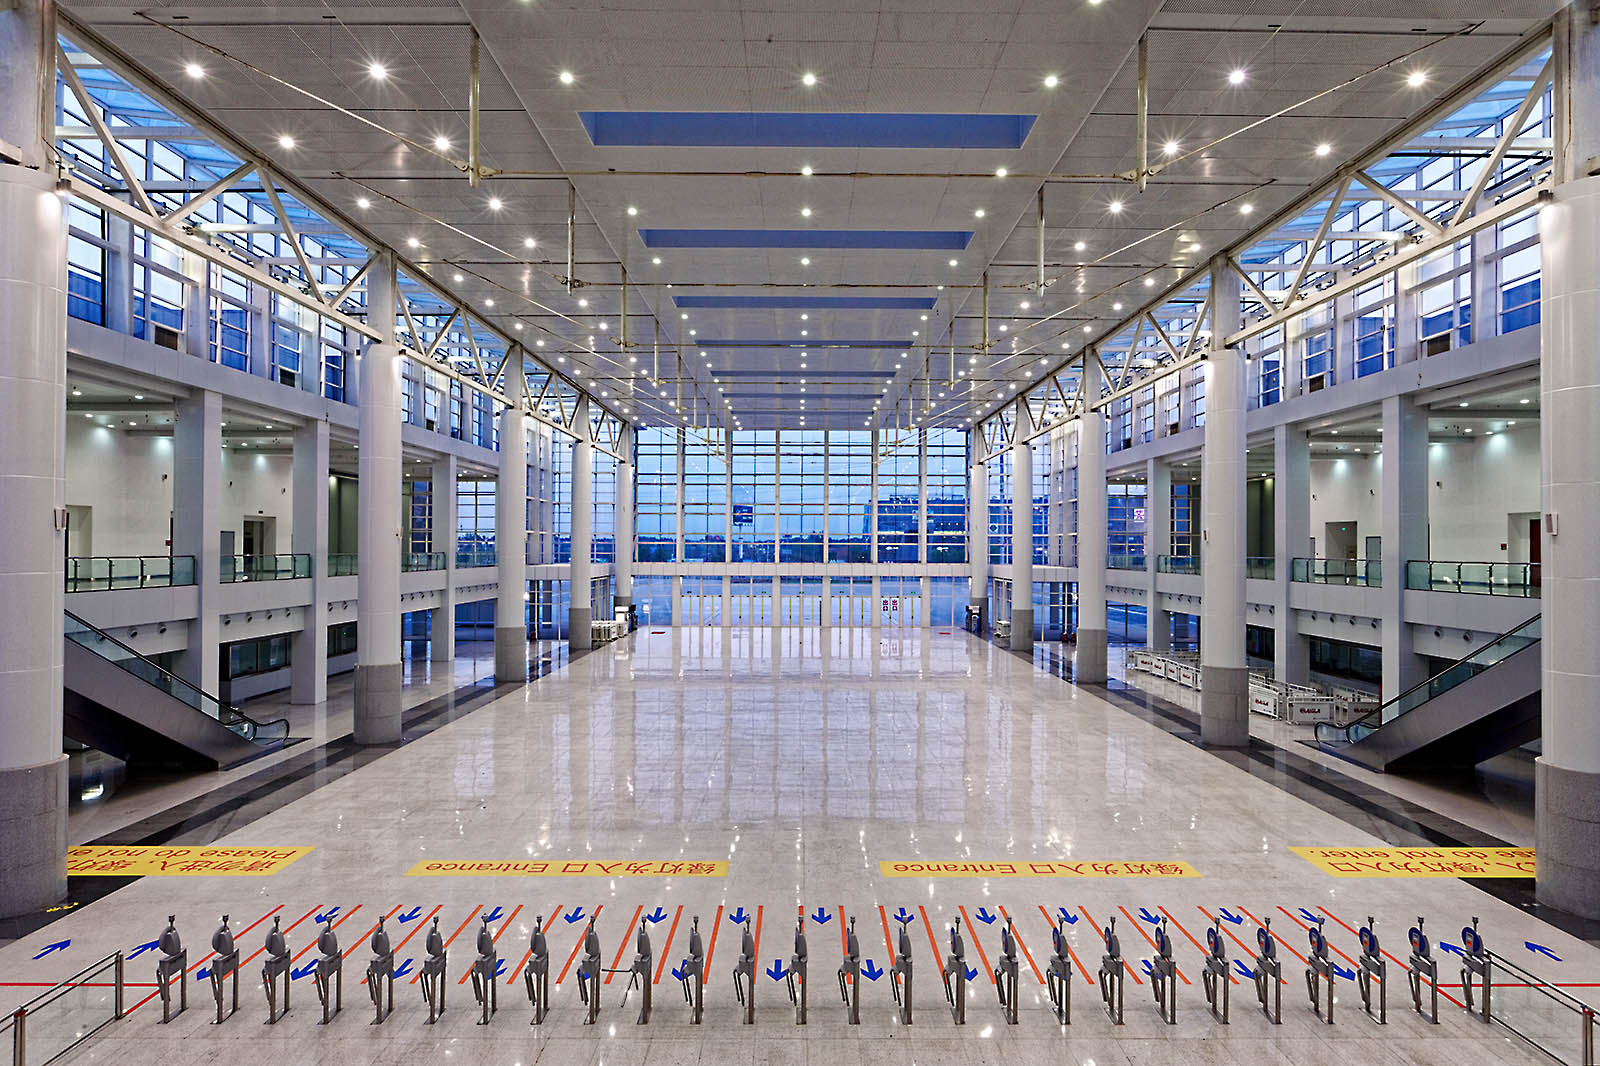 Interior, exterior, and aerial drone architectural photography of large scale projects by Paul Dingman, architectural photographer based in China and Asia. Paul Dingman photographs mixed-use projects, convention centers, and transporation facilities for architects, in China, Asia, and the Middle East.